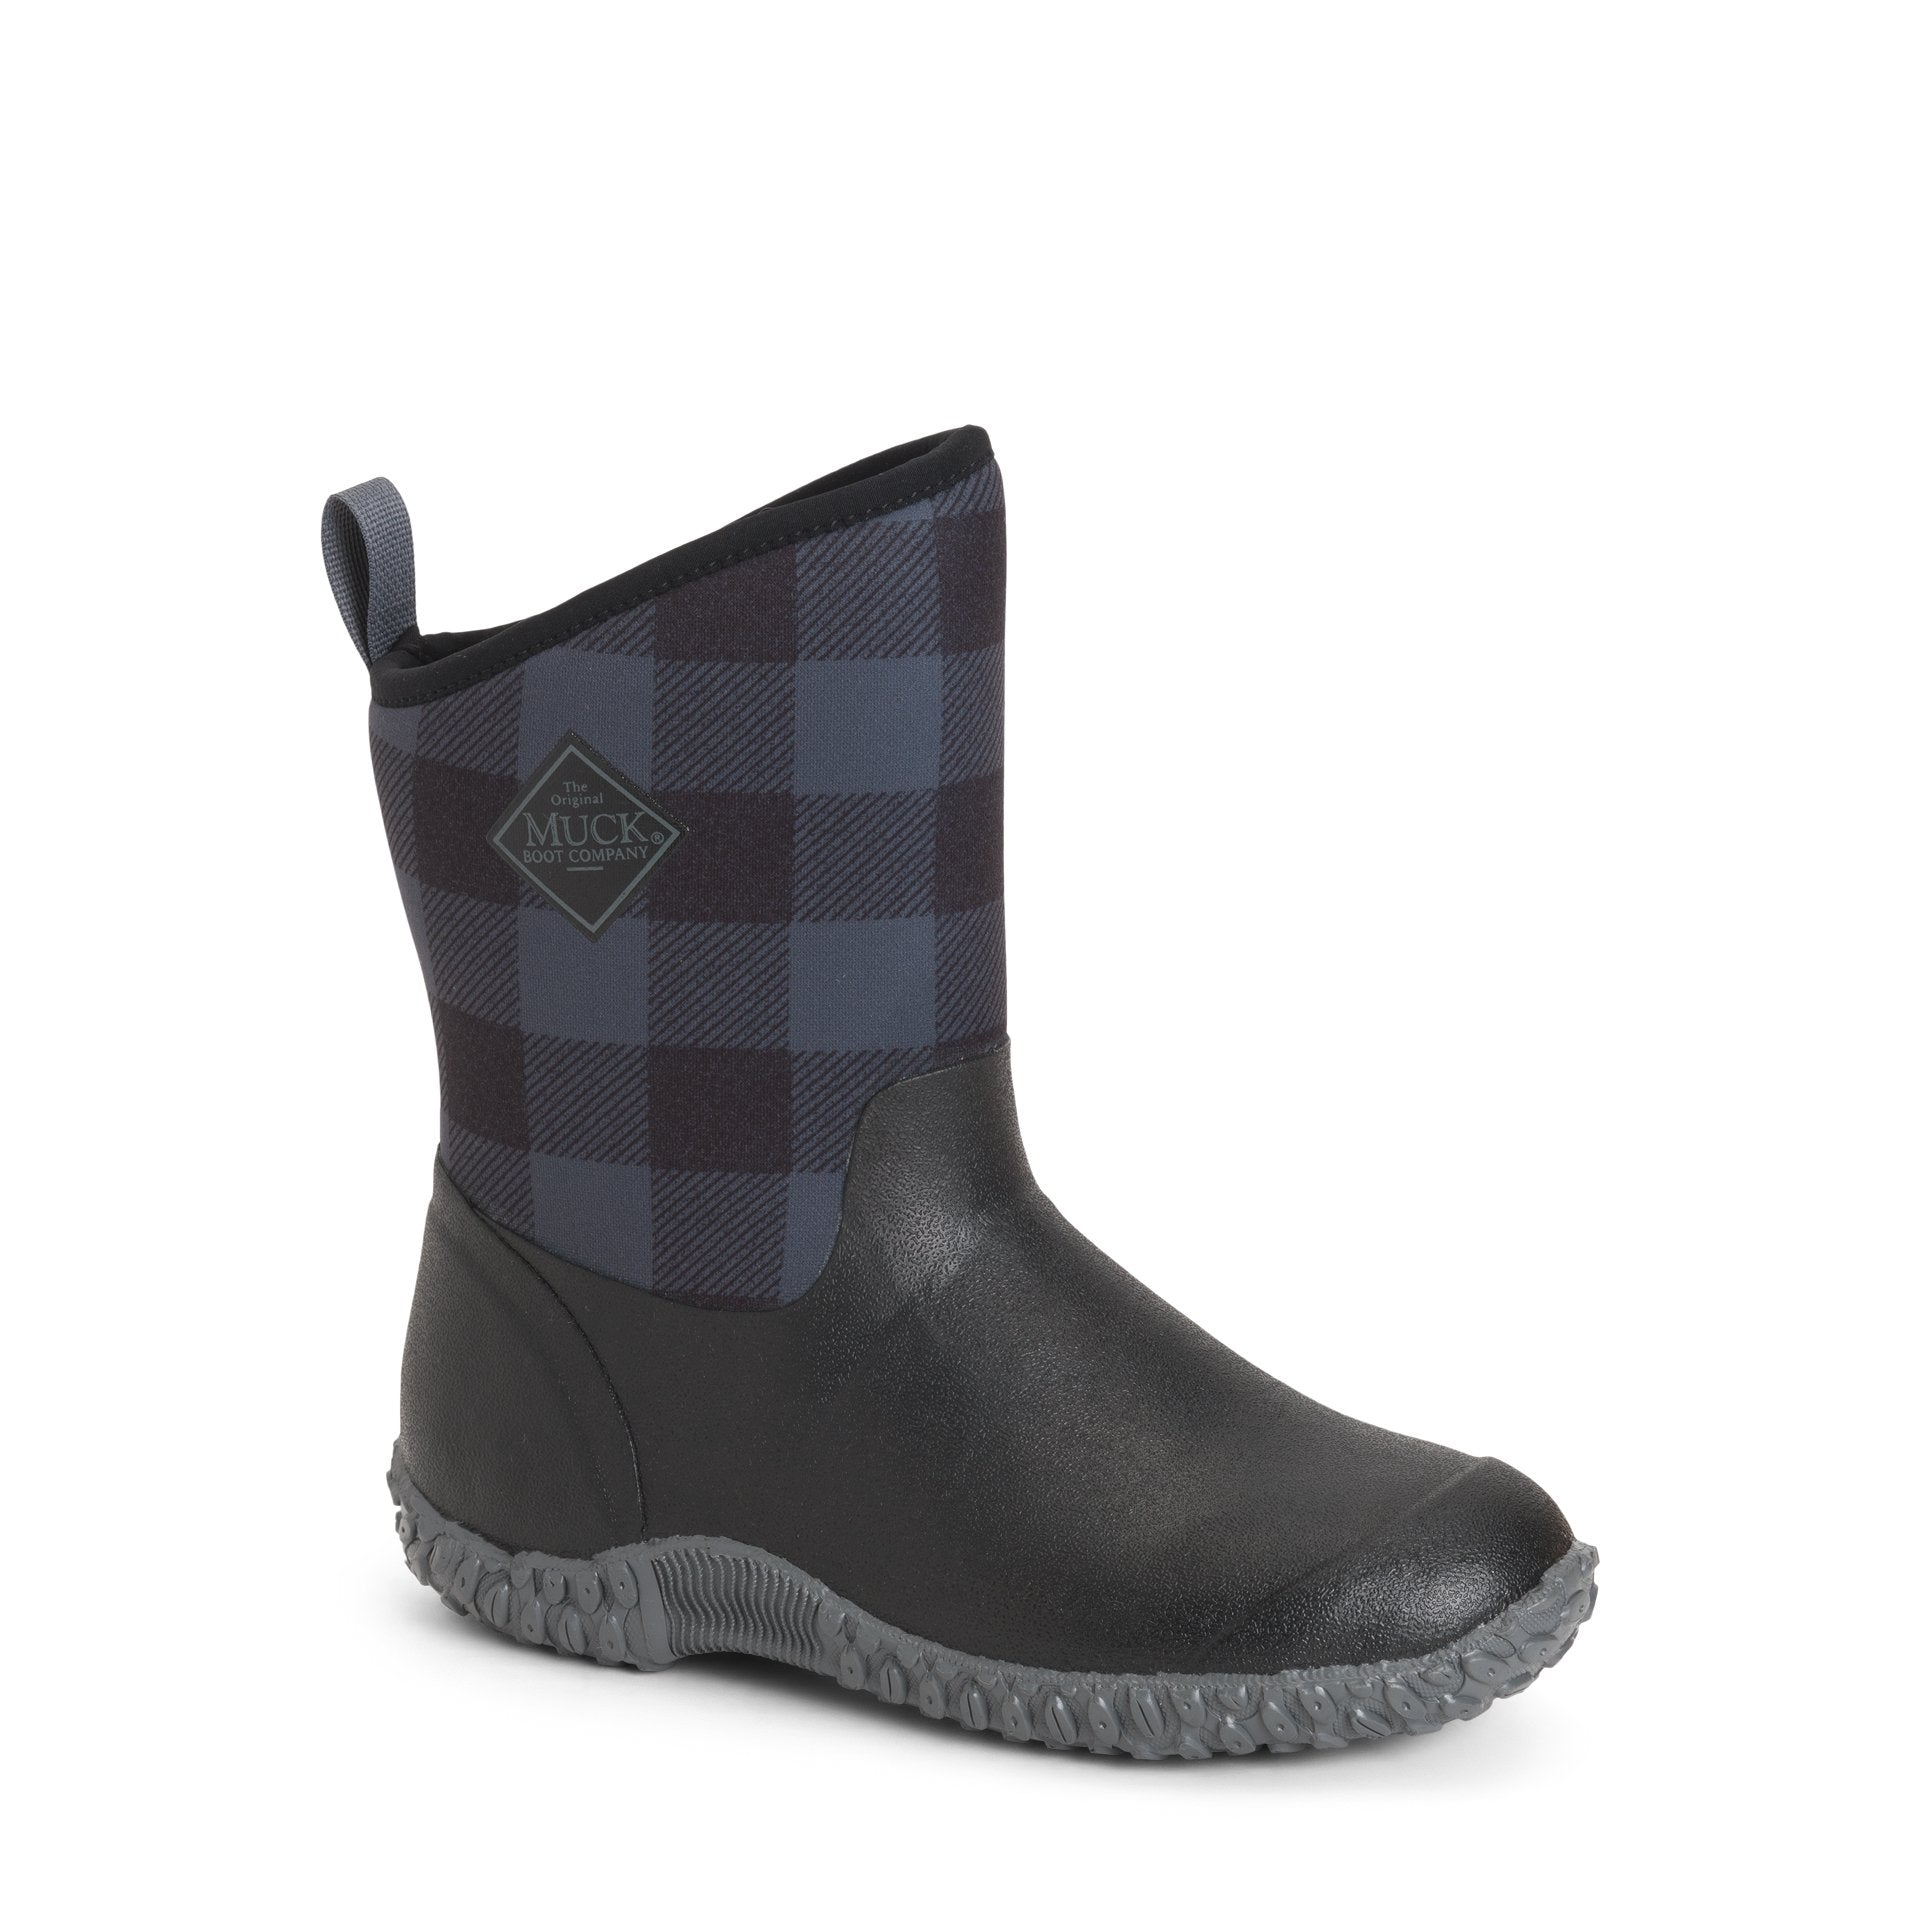 Women's Black / Grey Plaid Fleece Muckster II Muck Boots, WM2 - 1PLD